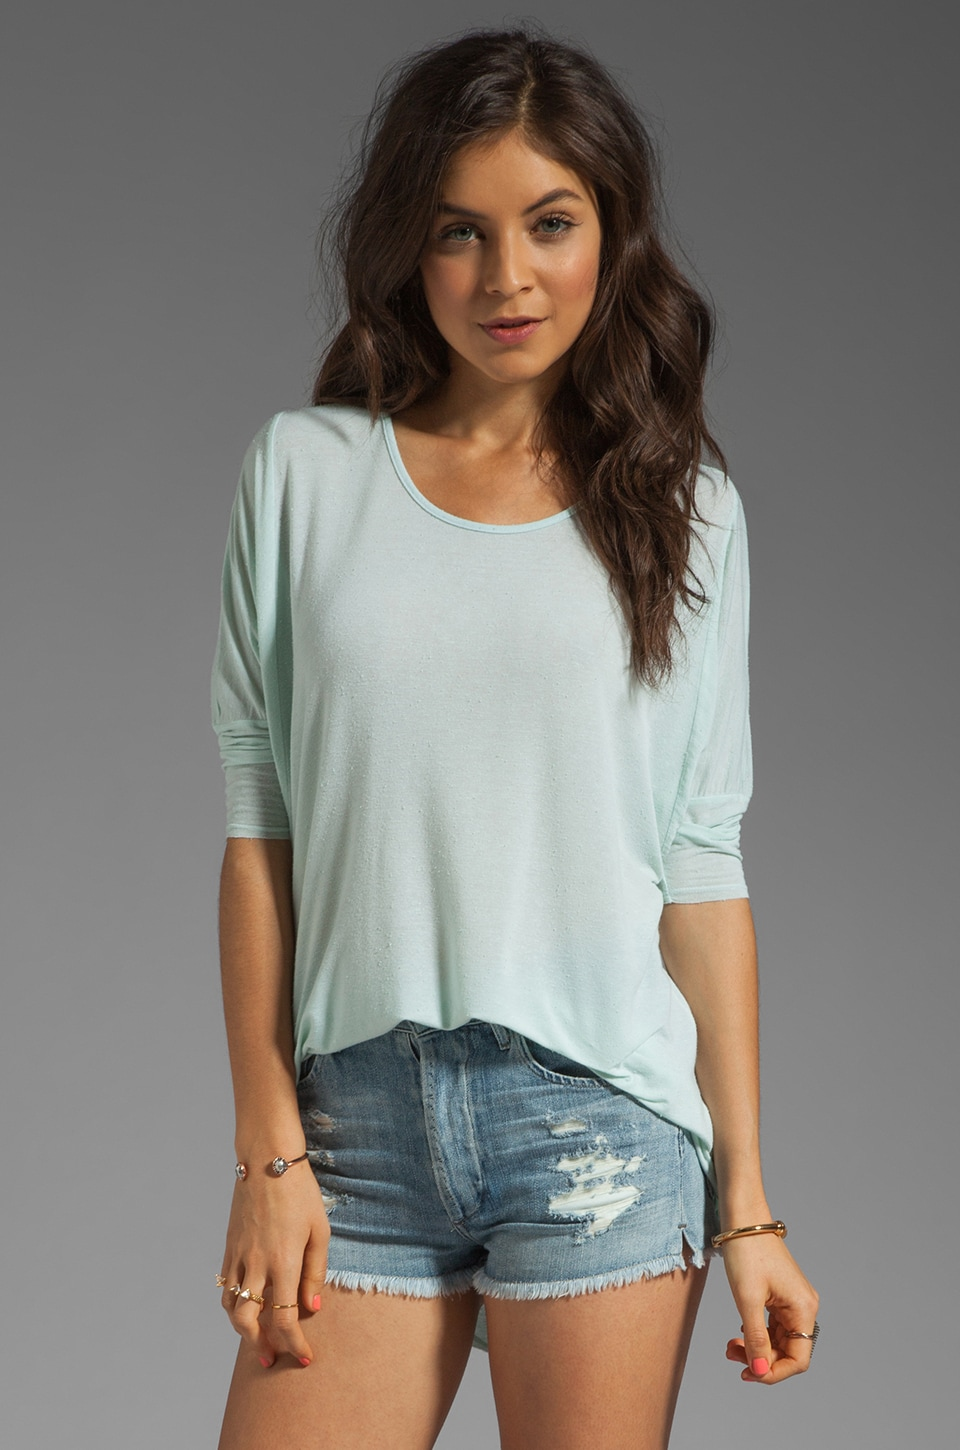 dolan Silk Jersey Oversized Tee in Mint